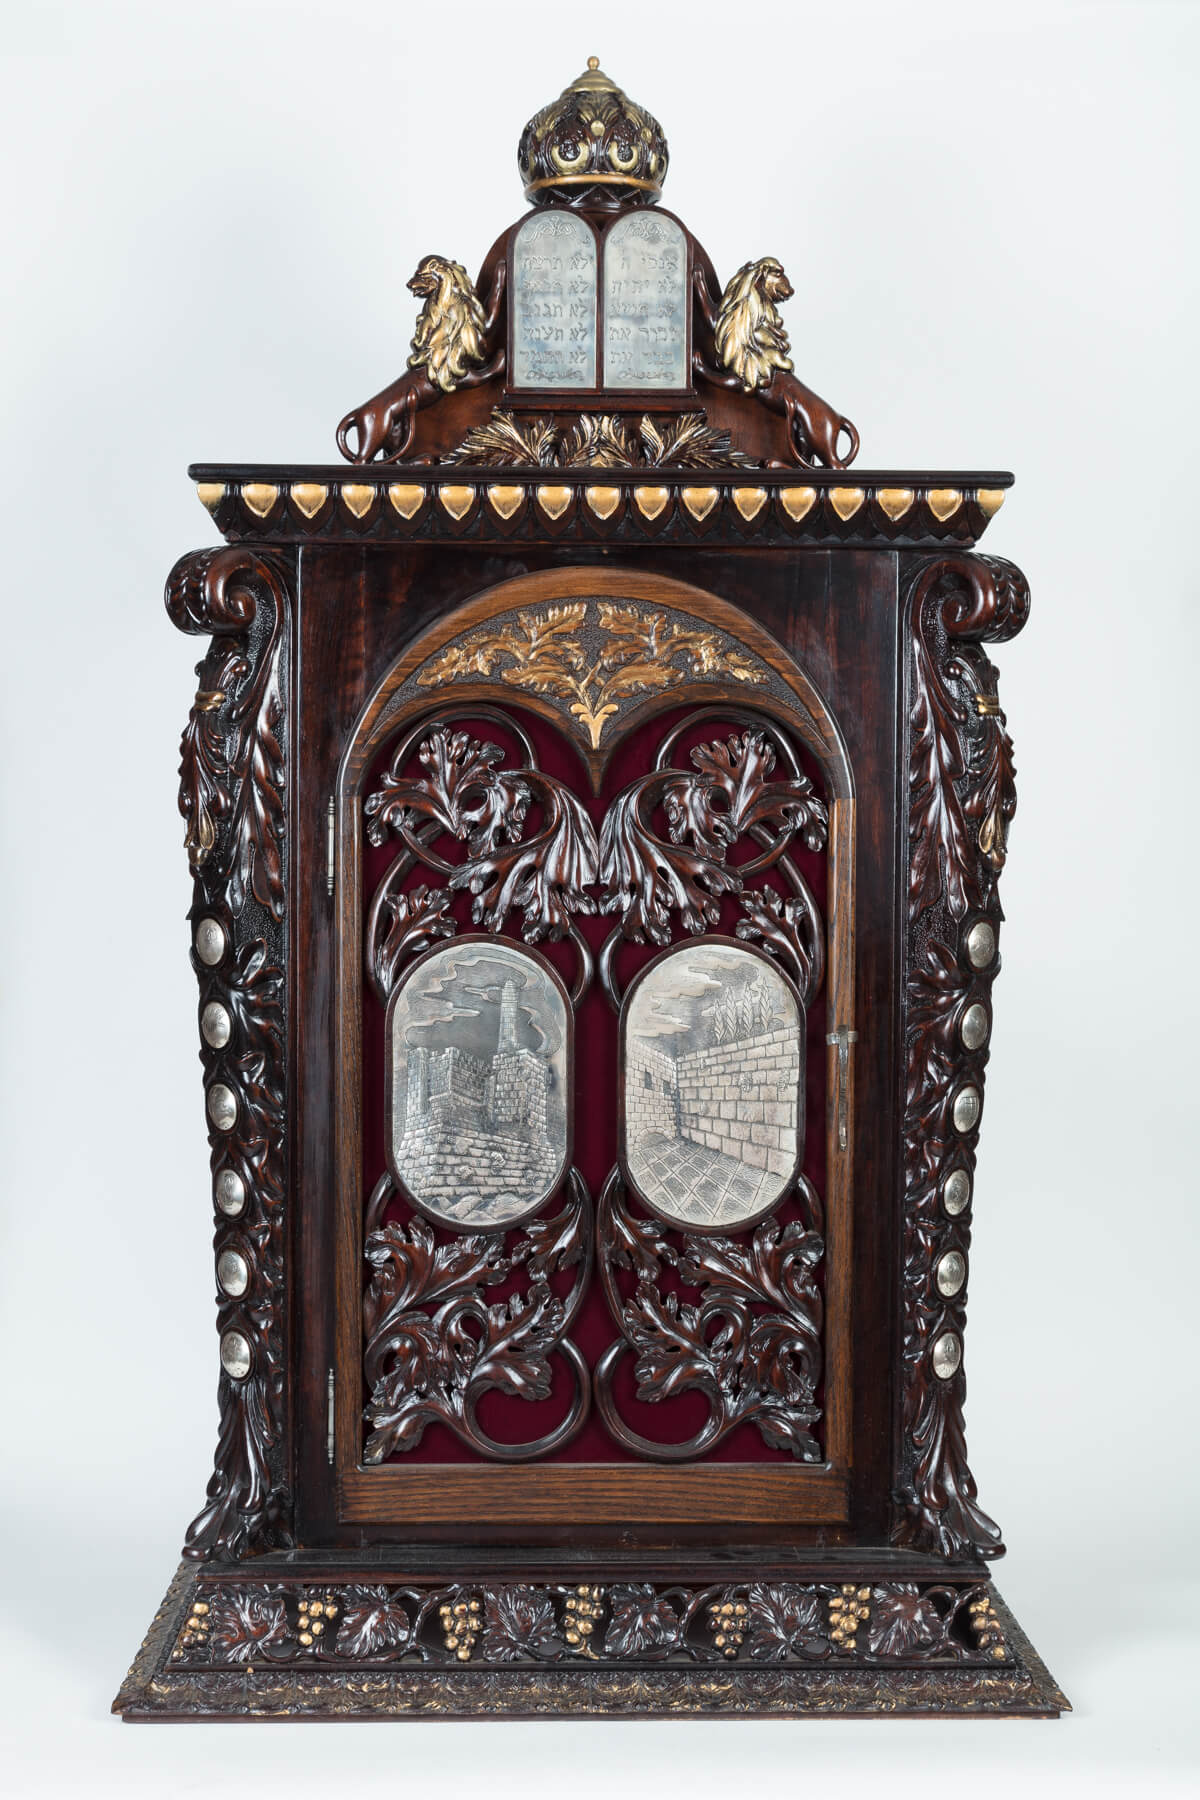 120. A Monumental Wooden And Silver Torah Ark By Shuki Freiman